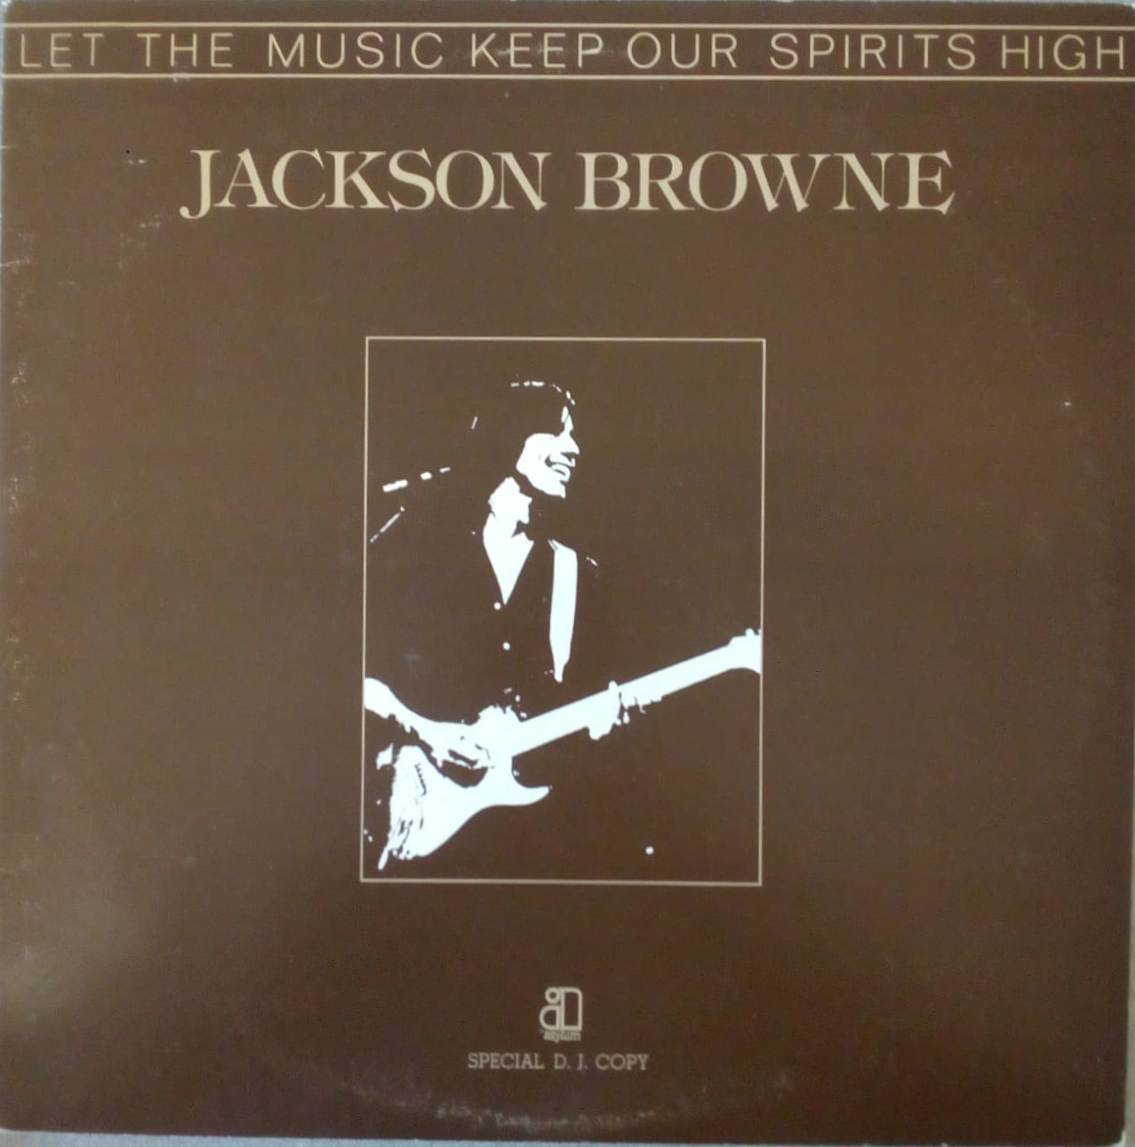 Let the music keep our spirits high - JACKSON BROWNE